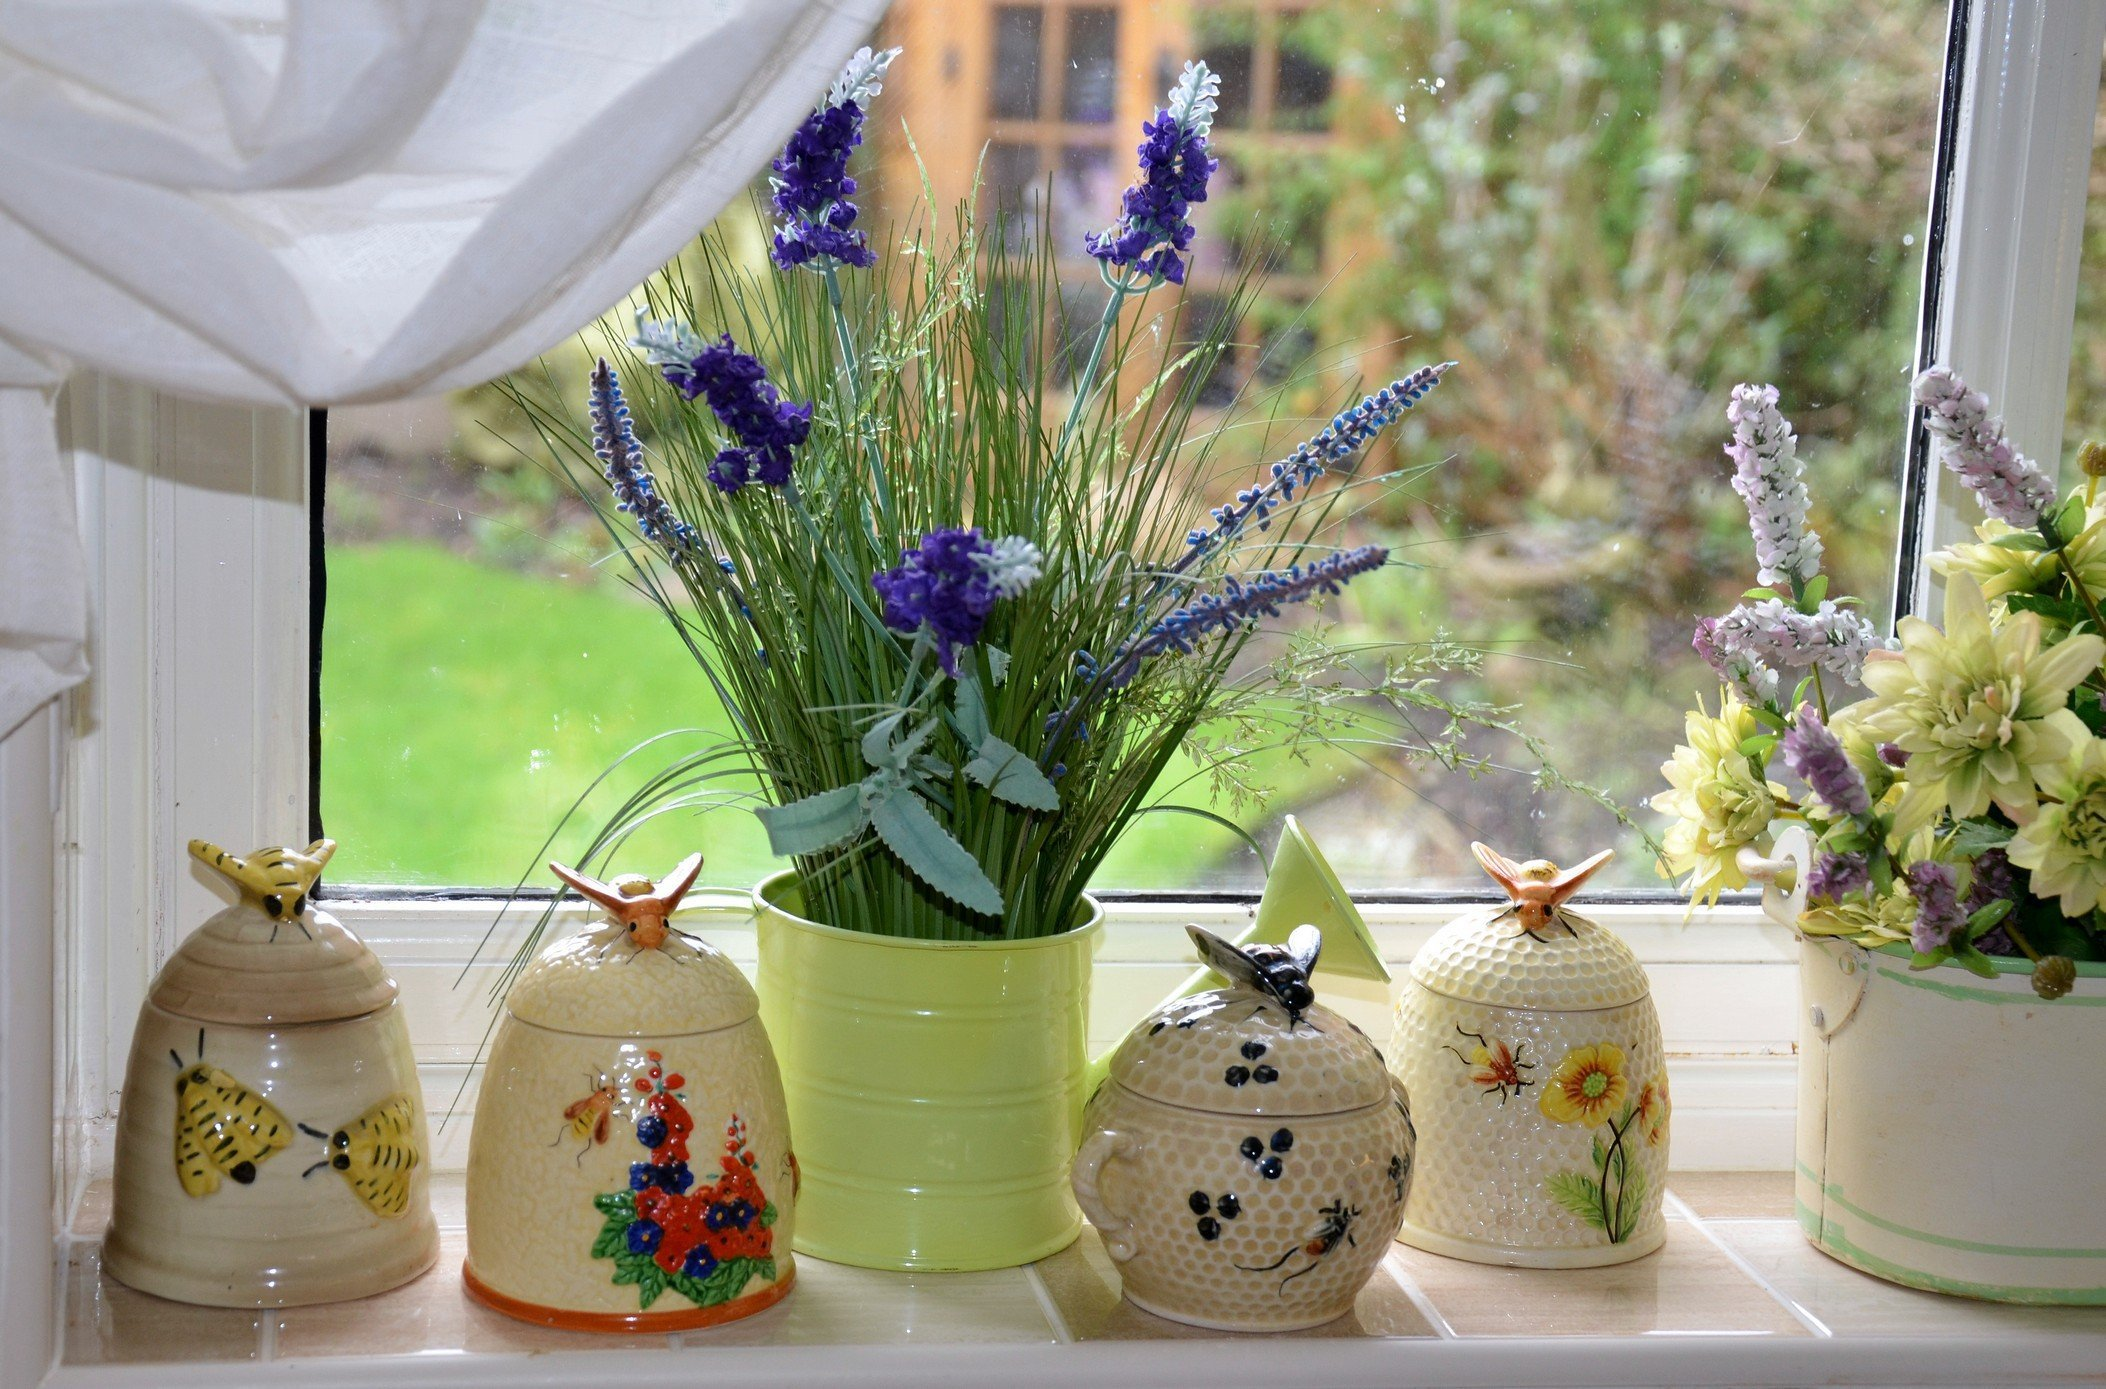 pot of lavender on window sill